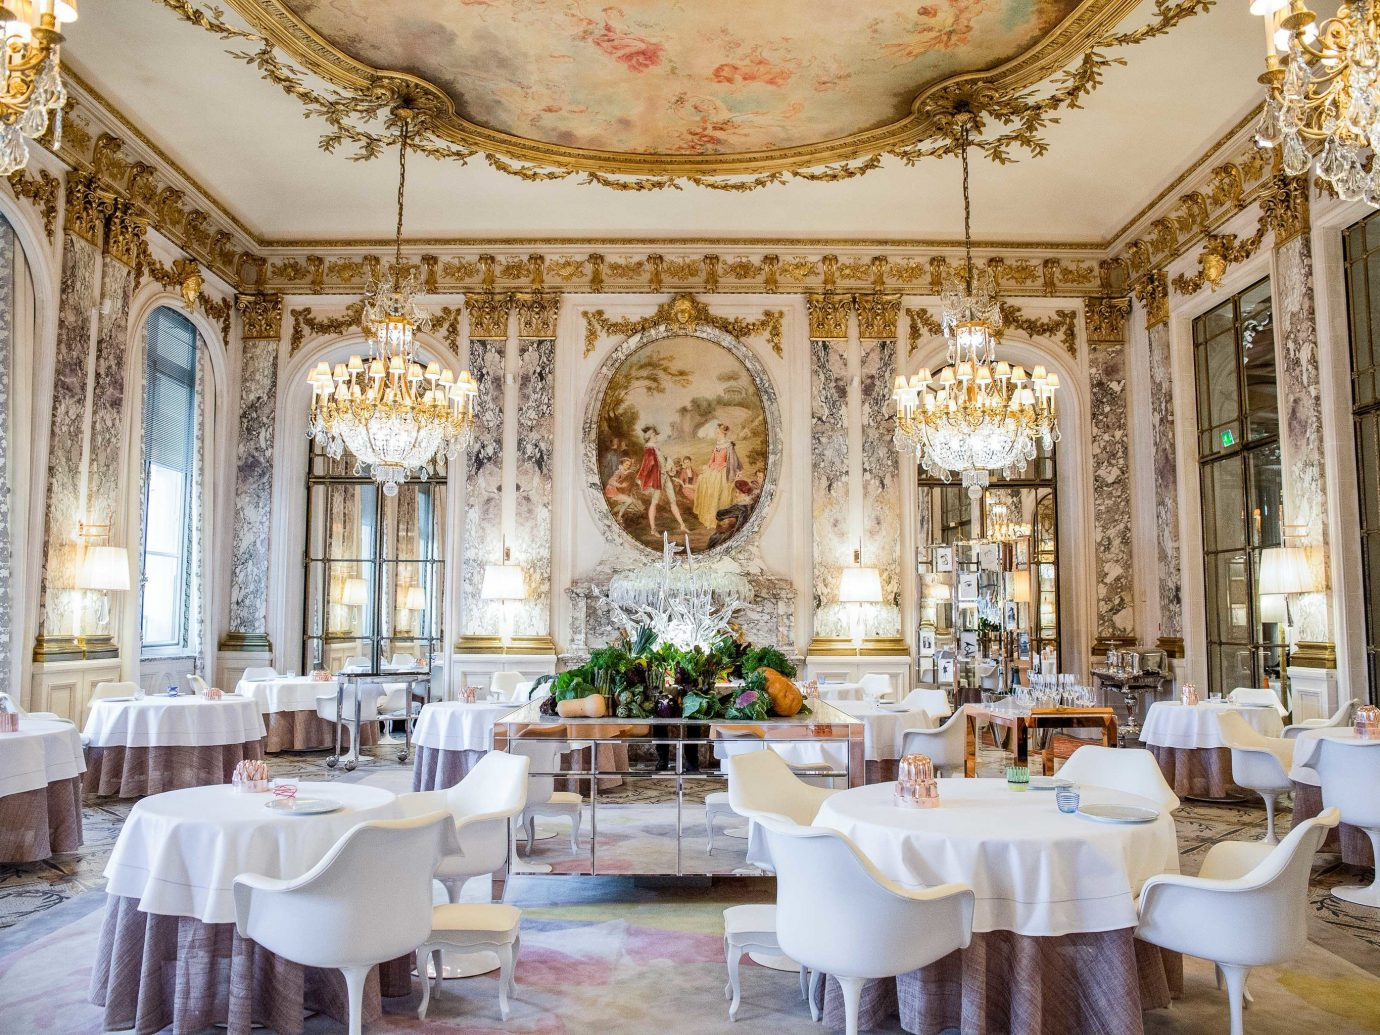 europe Trip Ideas indoor table window floor function hall room chair interior design restaurant ballroom ceiling dining room furniture decorated fancy area several